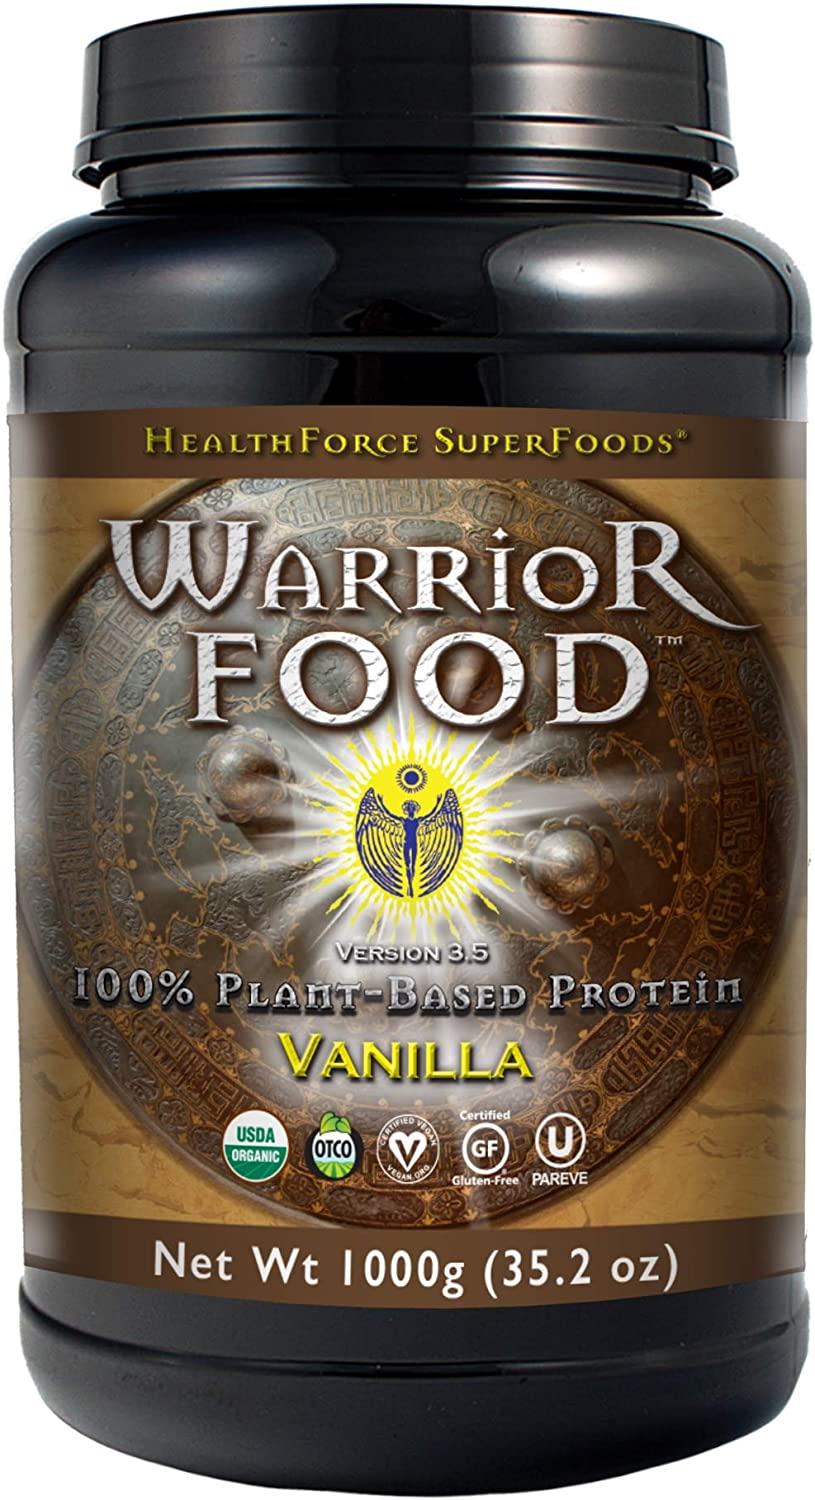 HealthForce SuperFoods Warrior Food, Vegan Protein Powder, Sports Nutrition Alternative, Plant-Based, All Natural, Organic, Gluten-Free, Vanilla, 1000 Grams